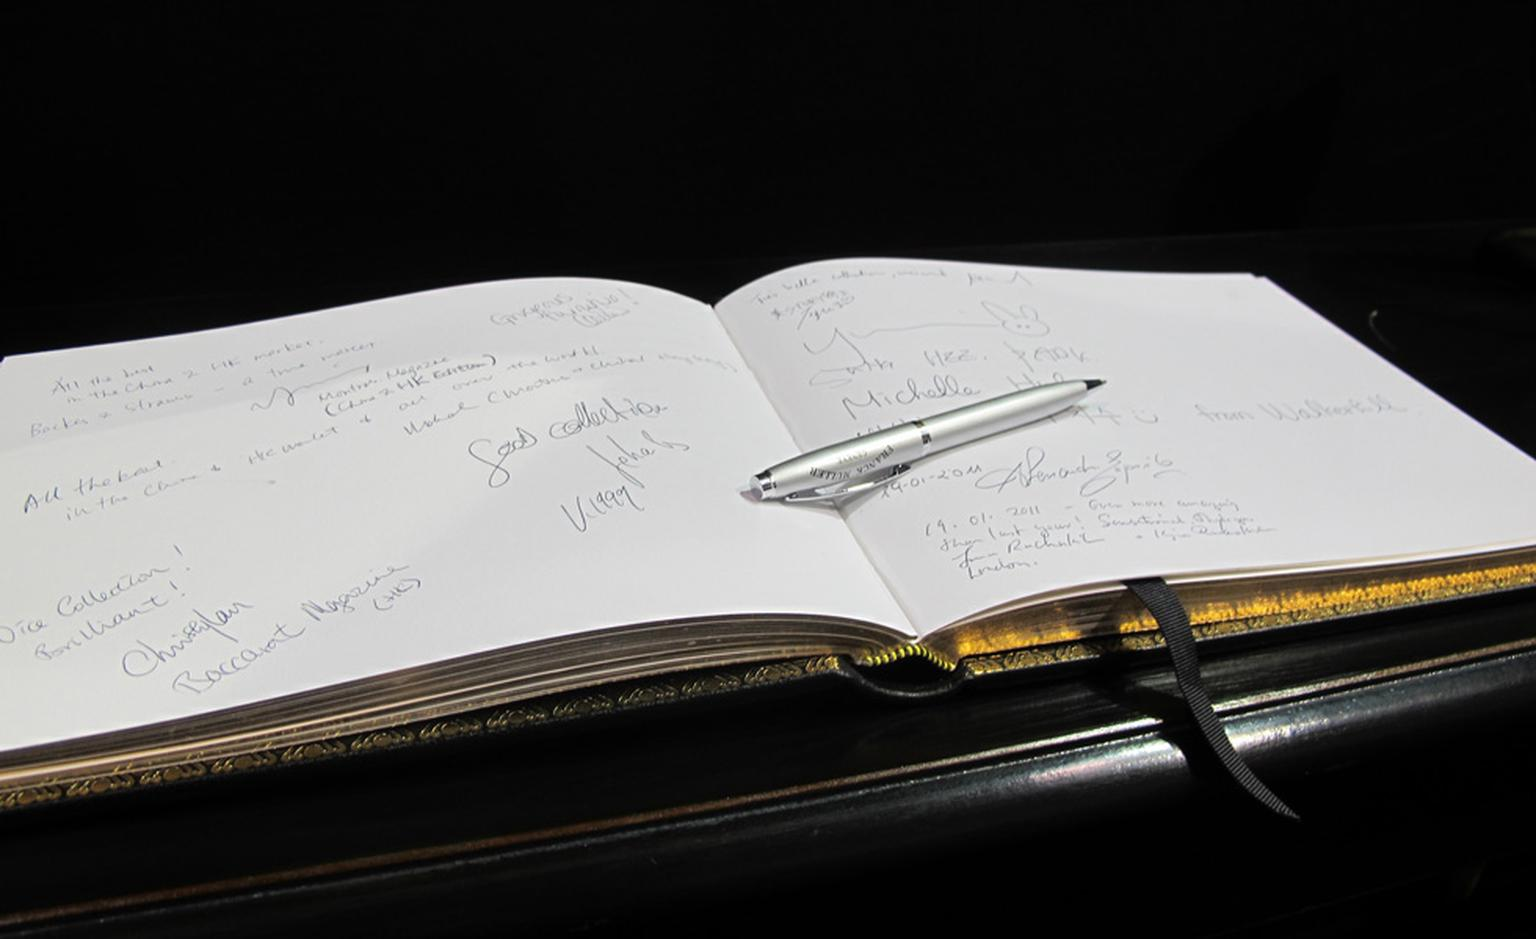 Guest book at Backes & Strauss' salon at the WPHH 2011.